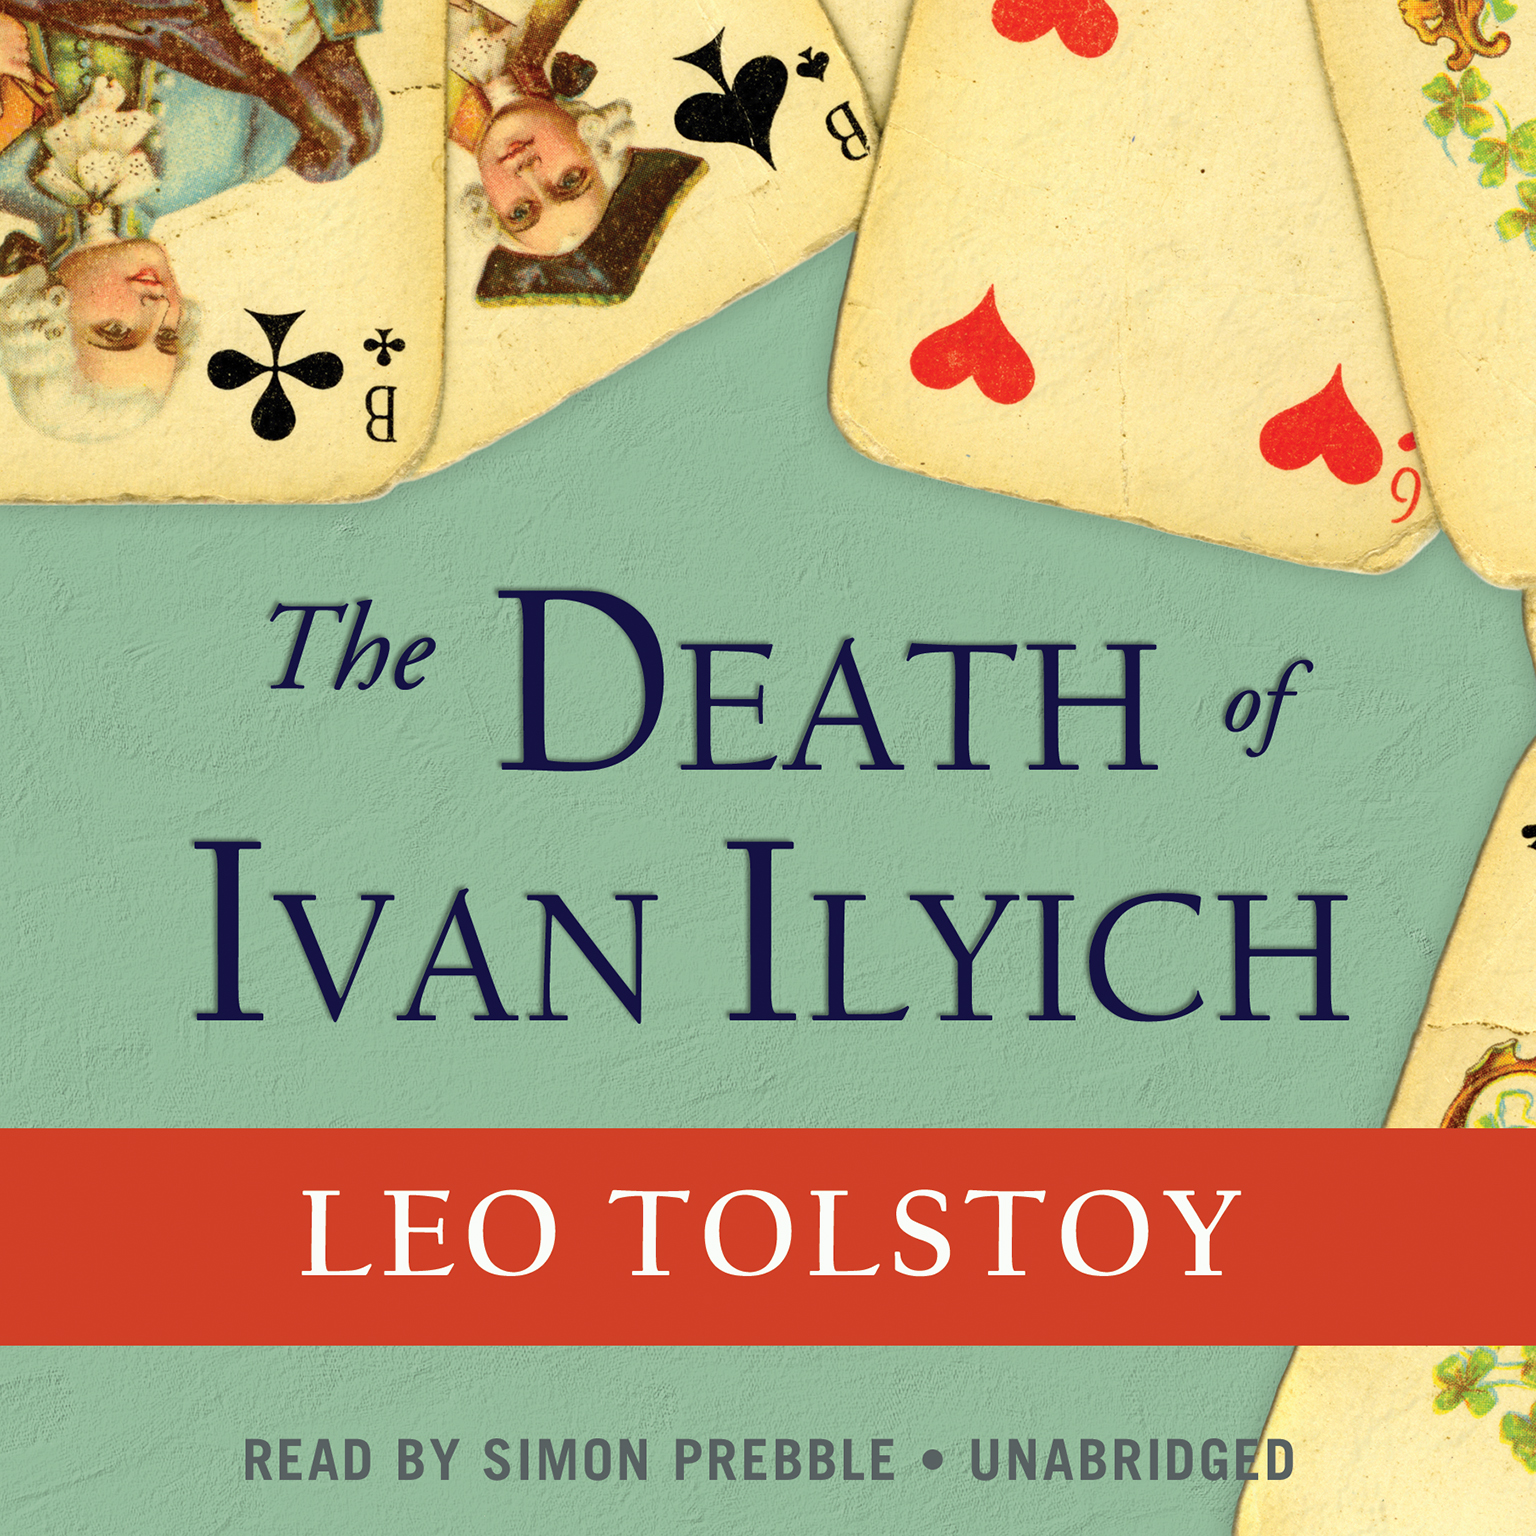 the death of ivan ilyich analysis